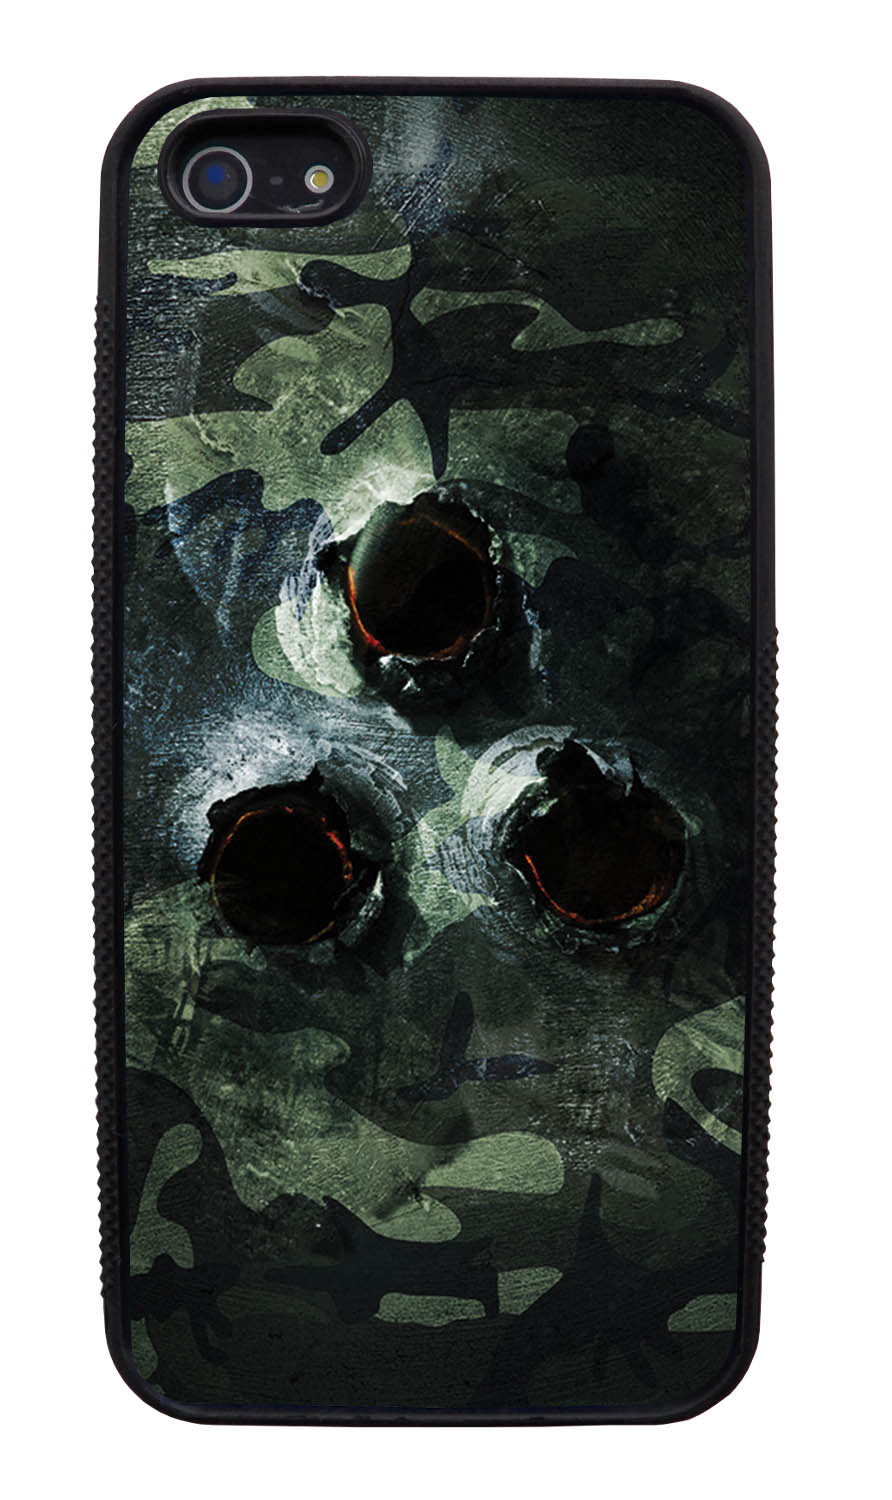 Apple iPhone 5 / 5S Camo Case - Metal Bullet Ridden Traditional - Woodland - Black Slim Rubber Case